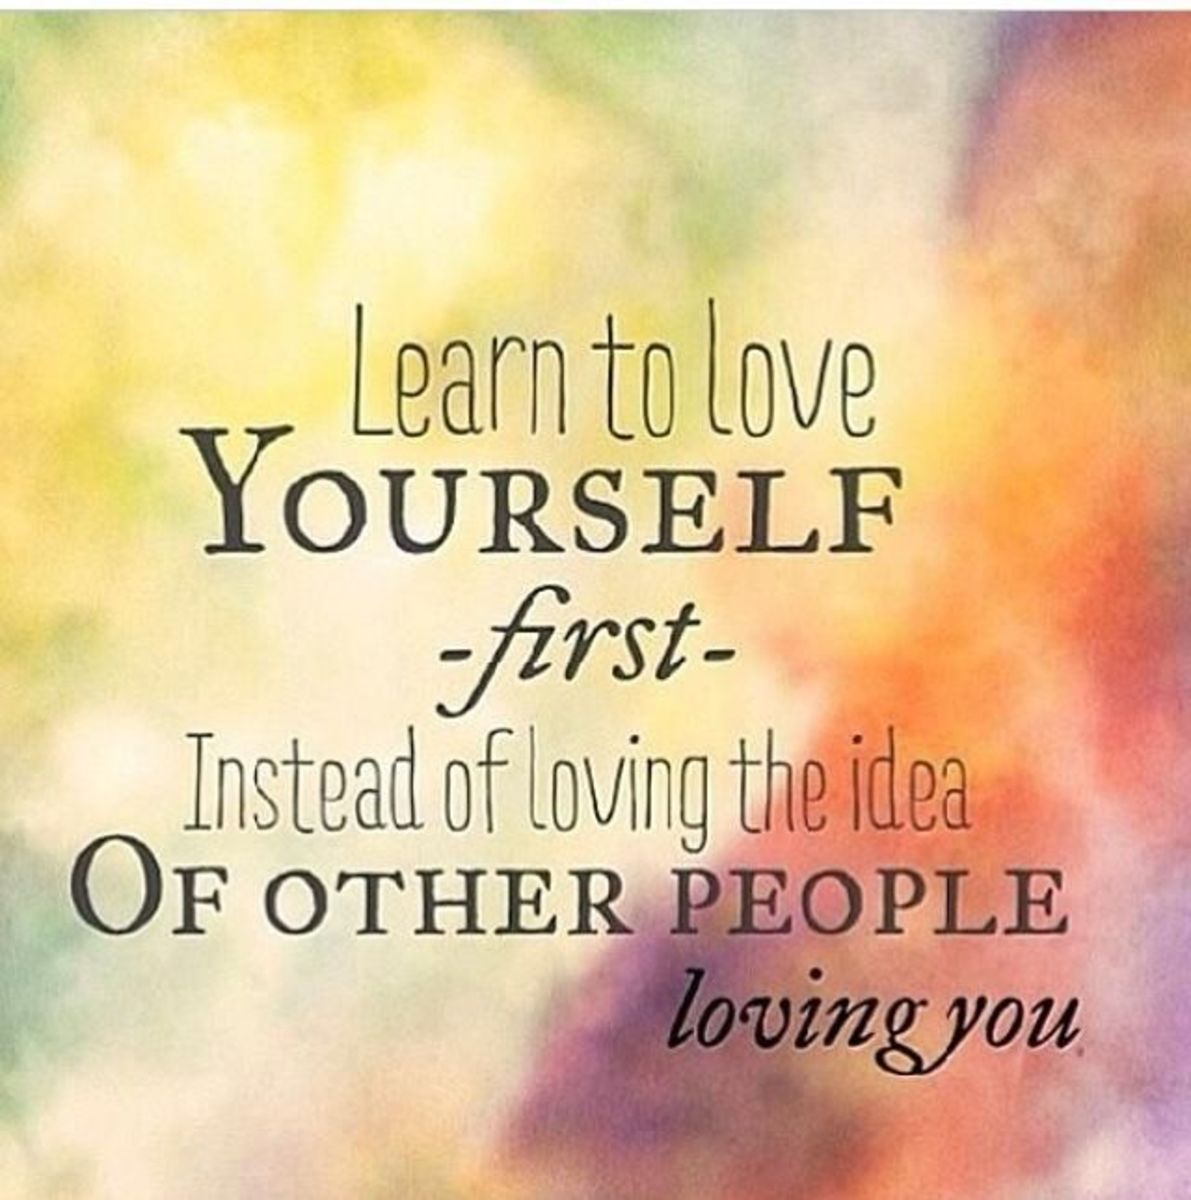 Always love yourself